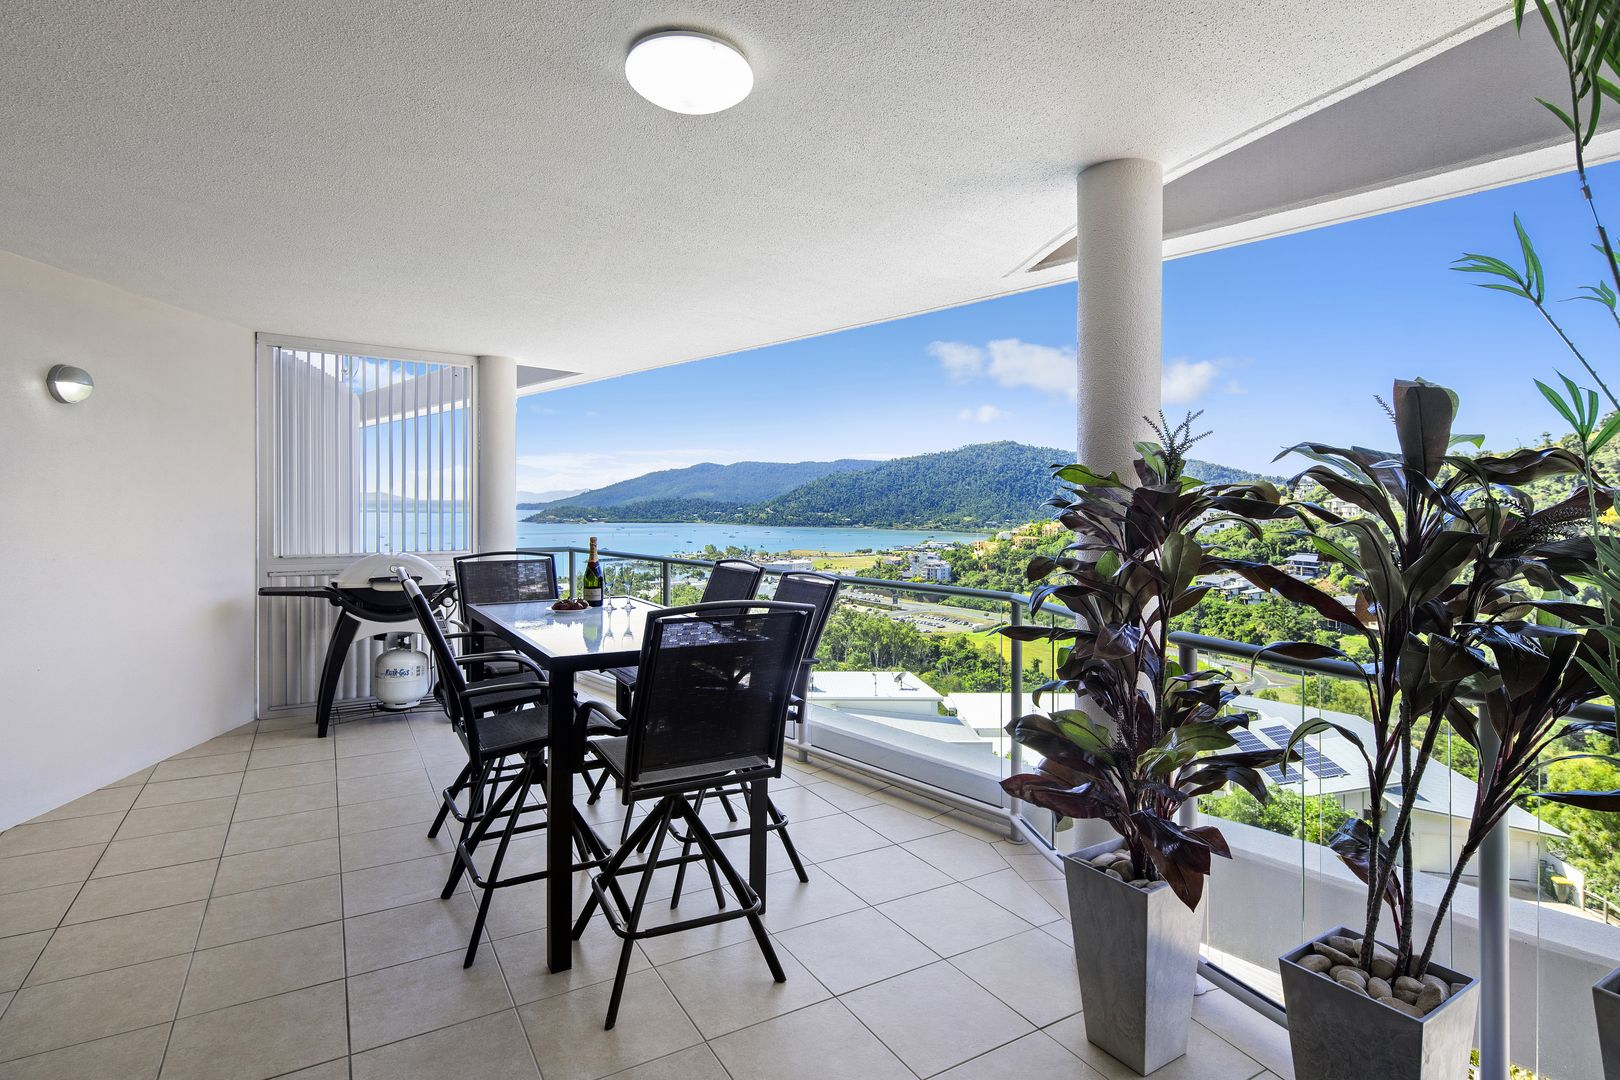 15/18 Seaview Drive, Airlie Beach QLD 4802, Image 2